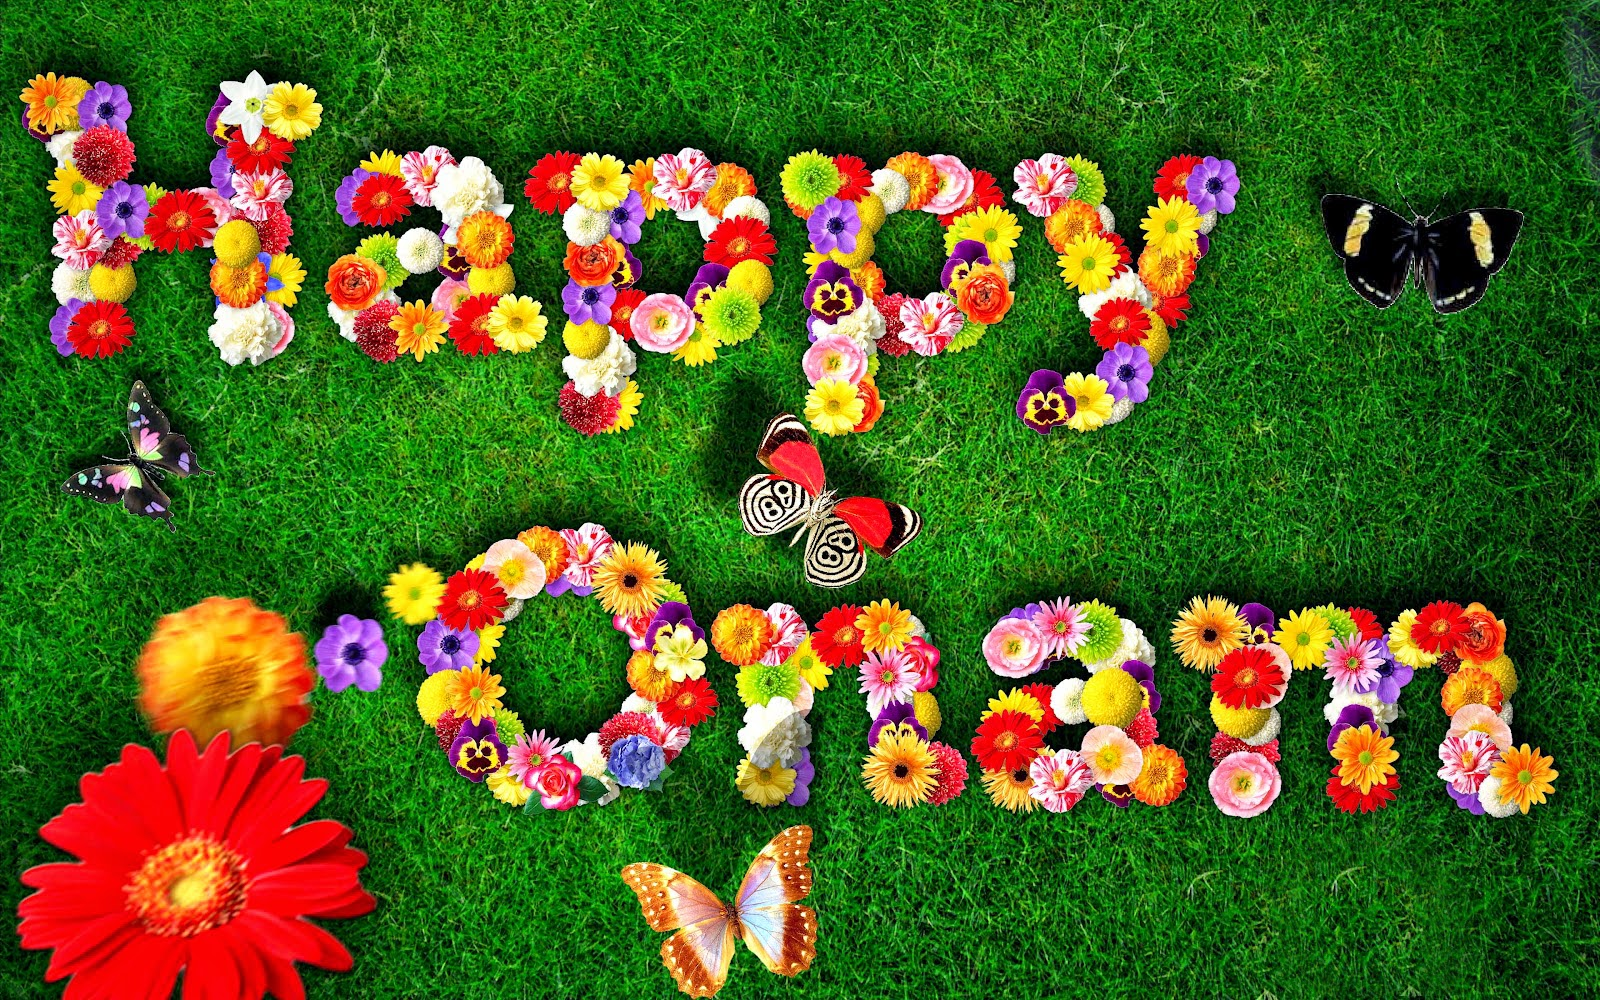 Onam 2015 flower design wallpaper creative image